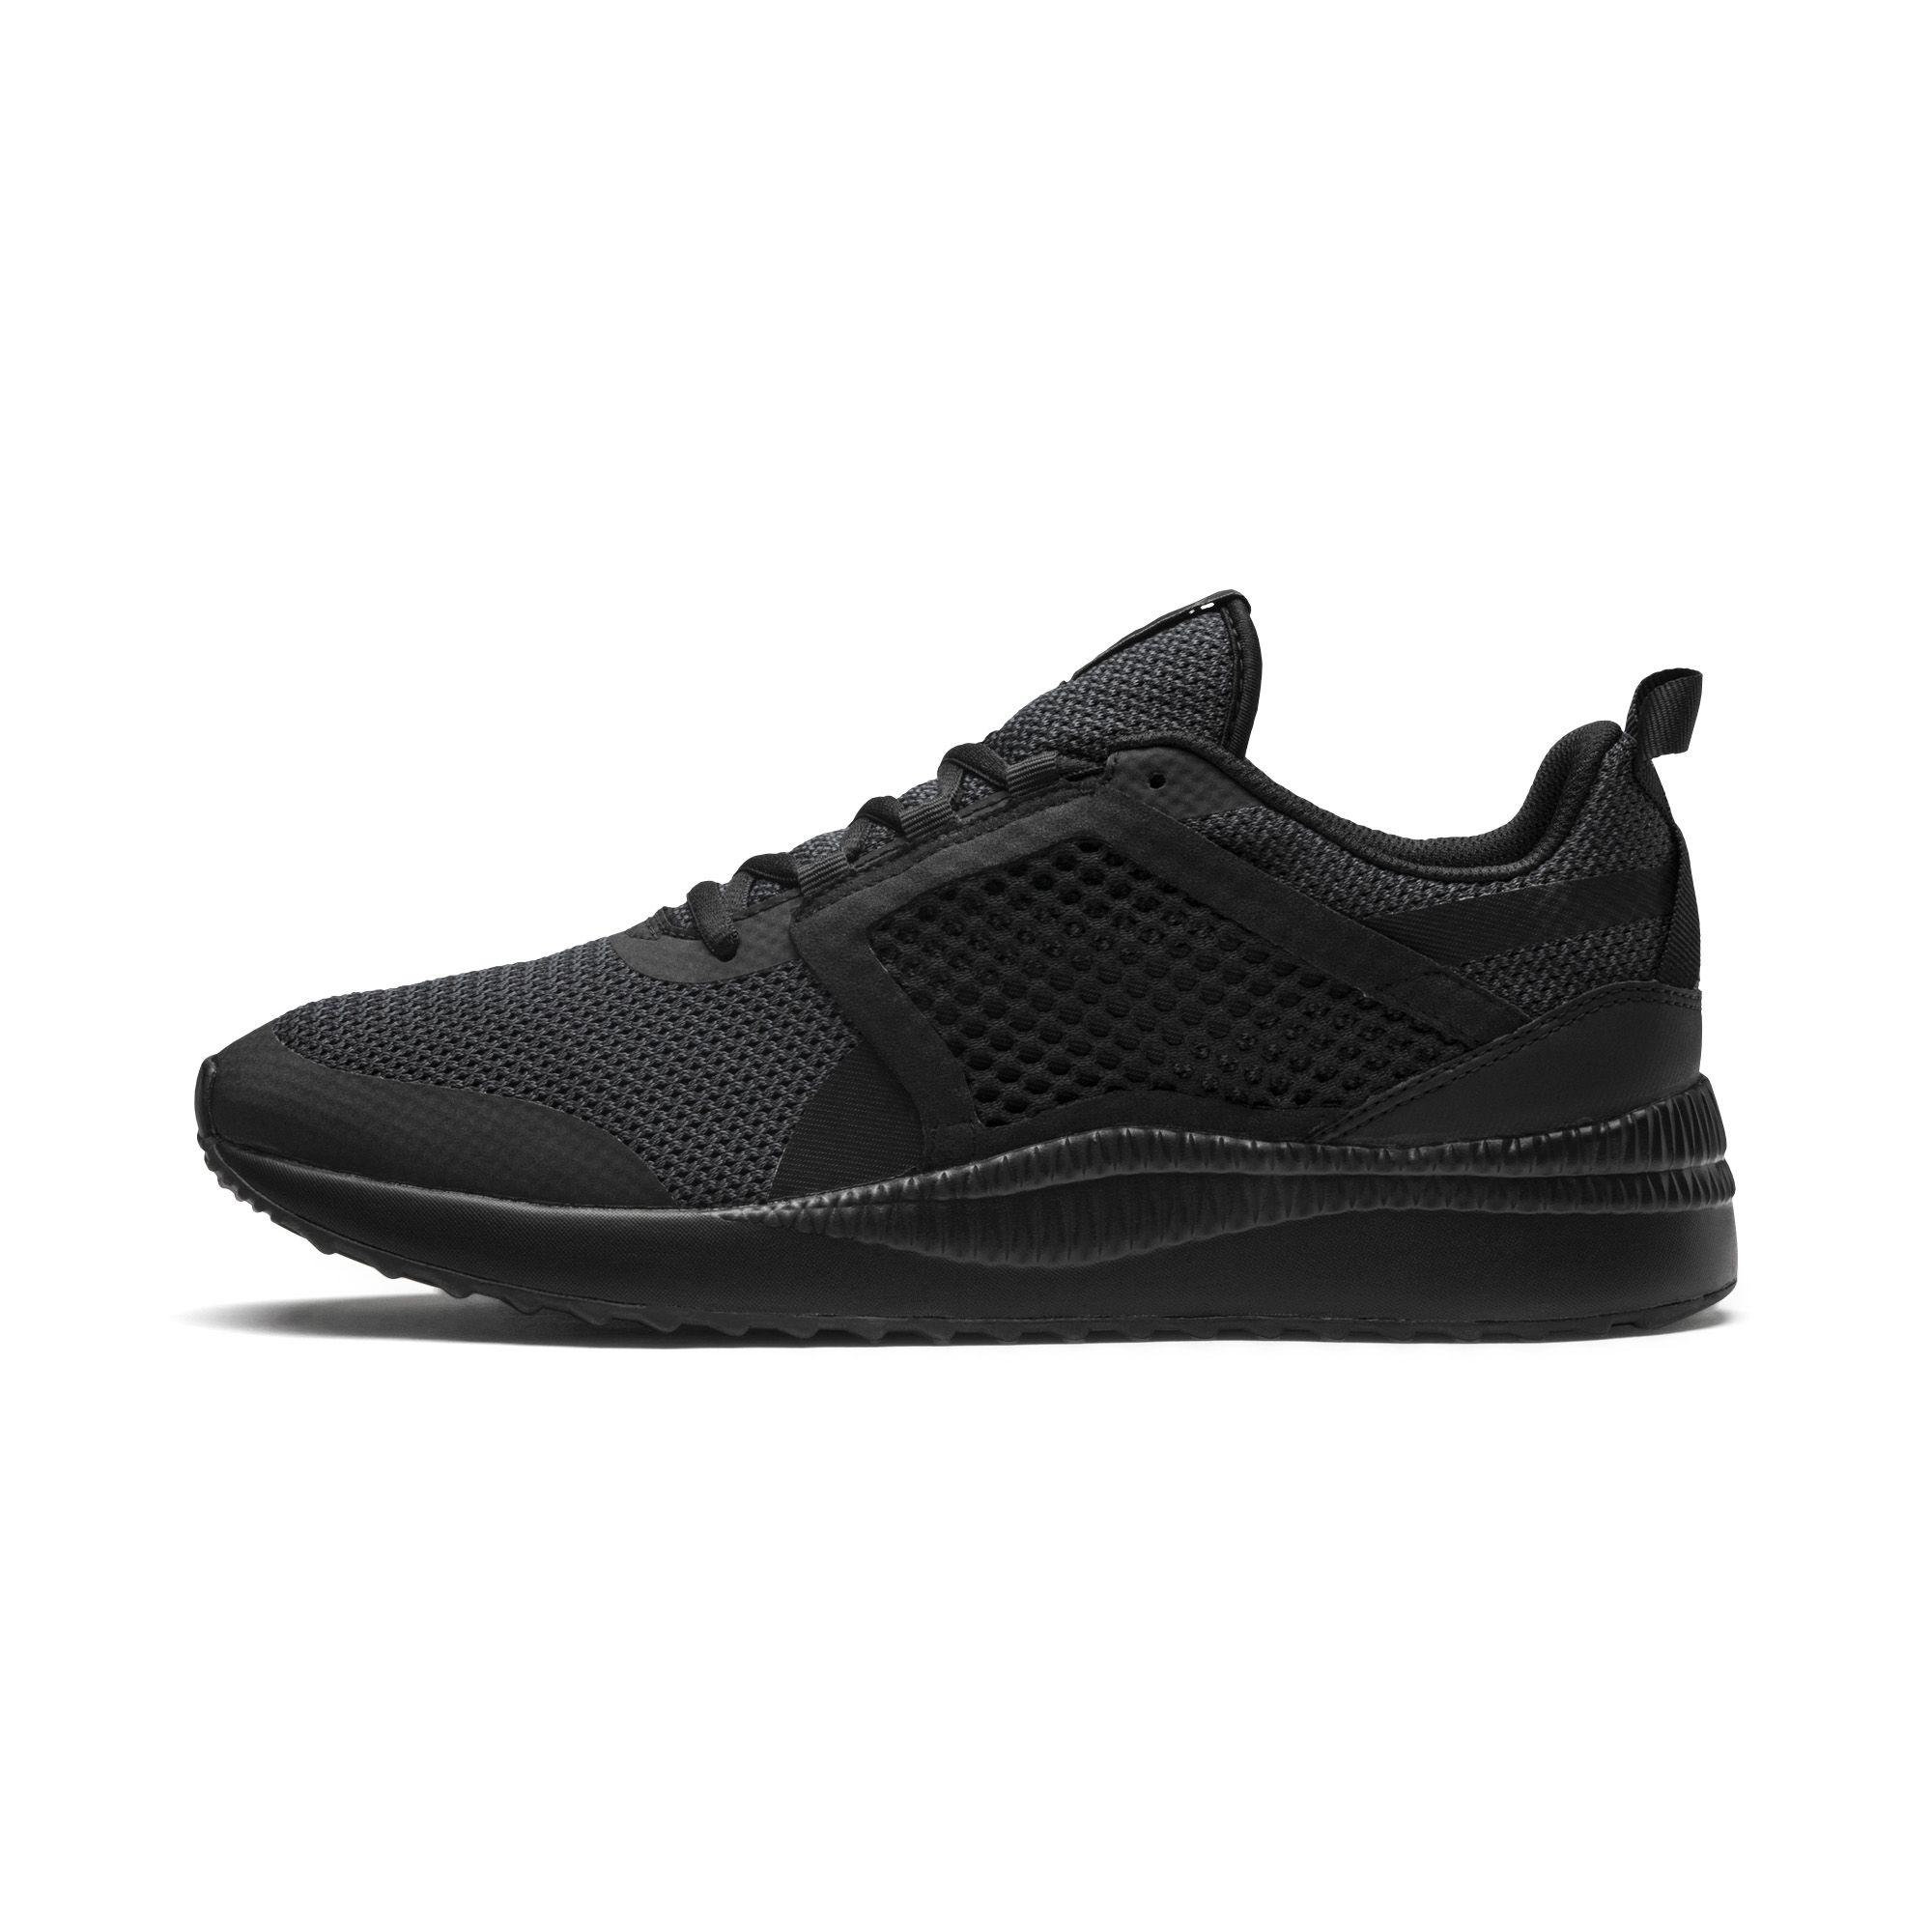 Lyst - PUMA Pacer Next Net Sneakers in Black for Men - Save 26% 8d848aa81